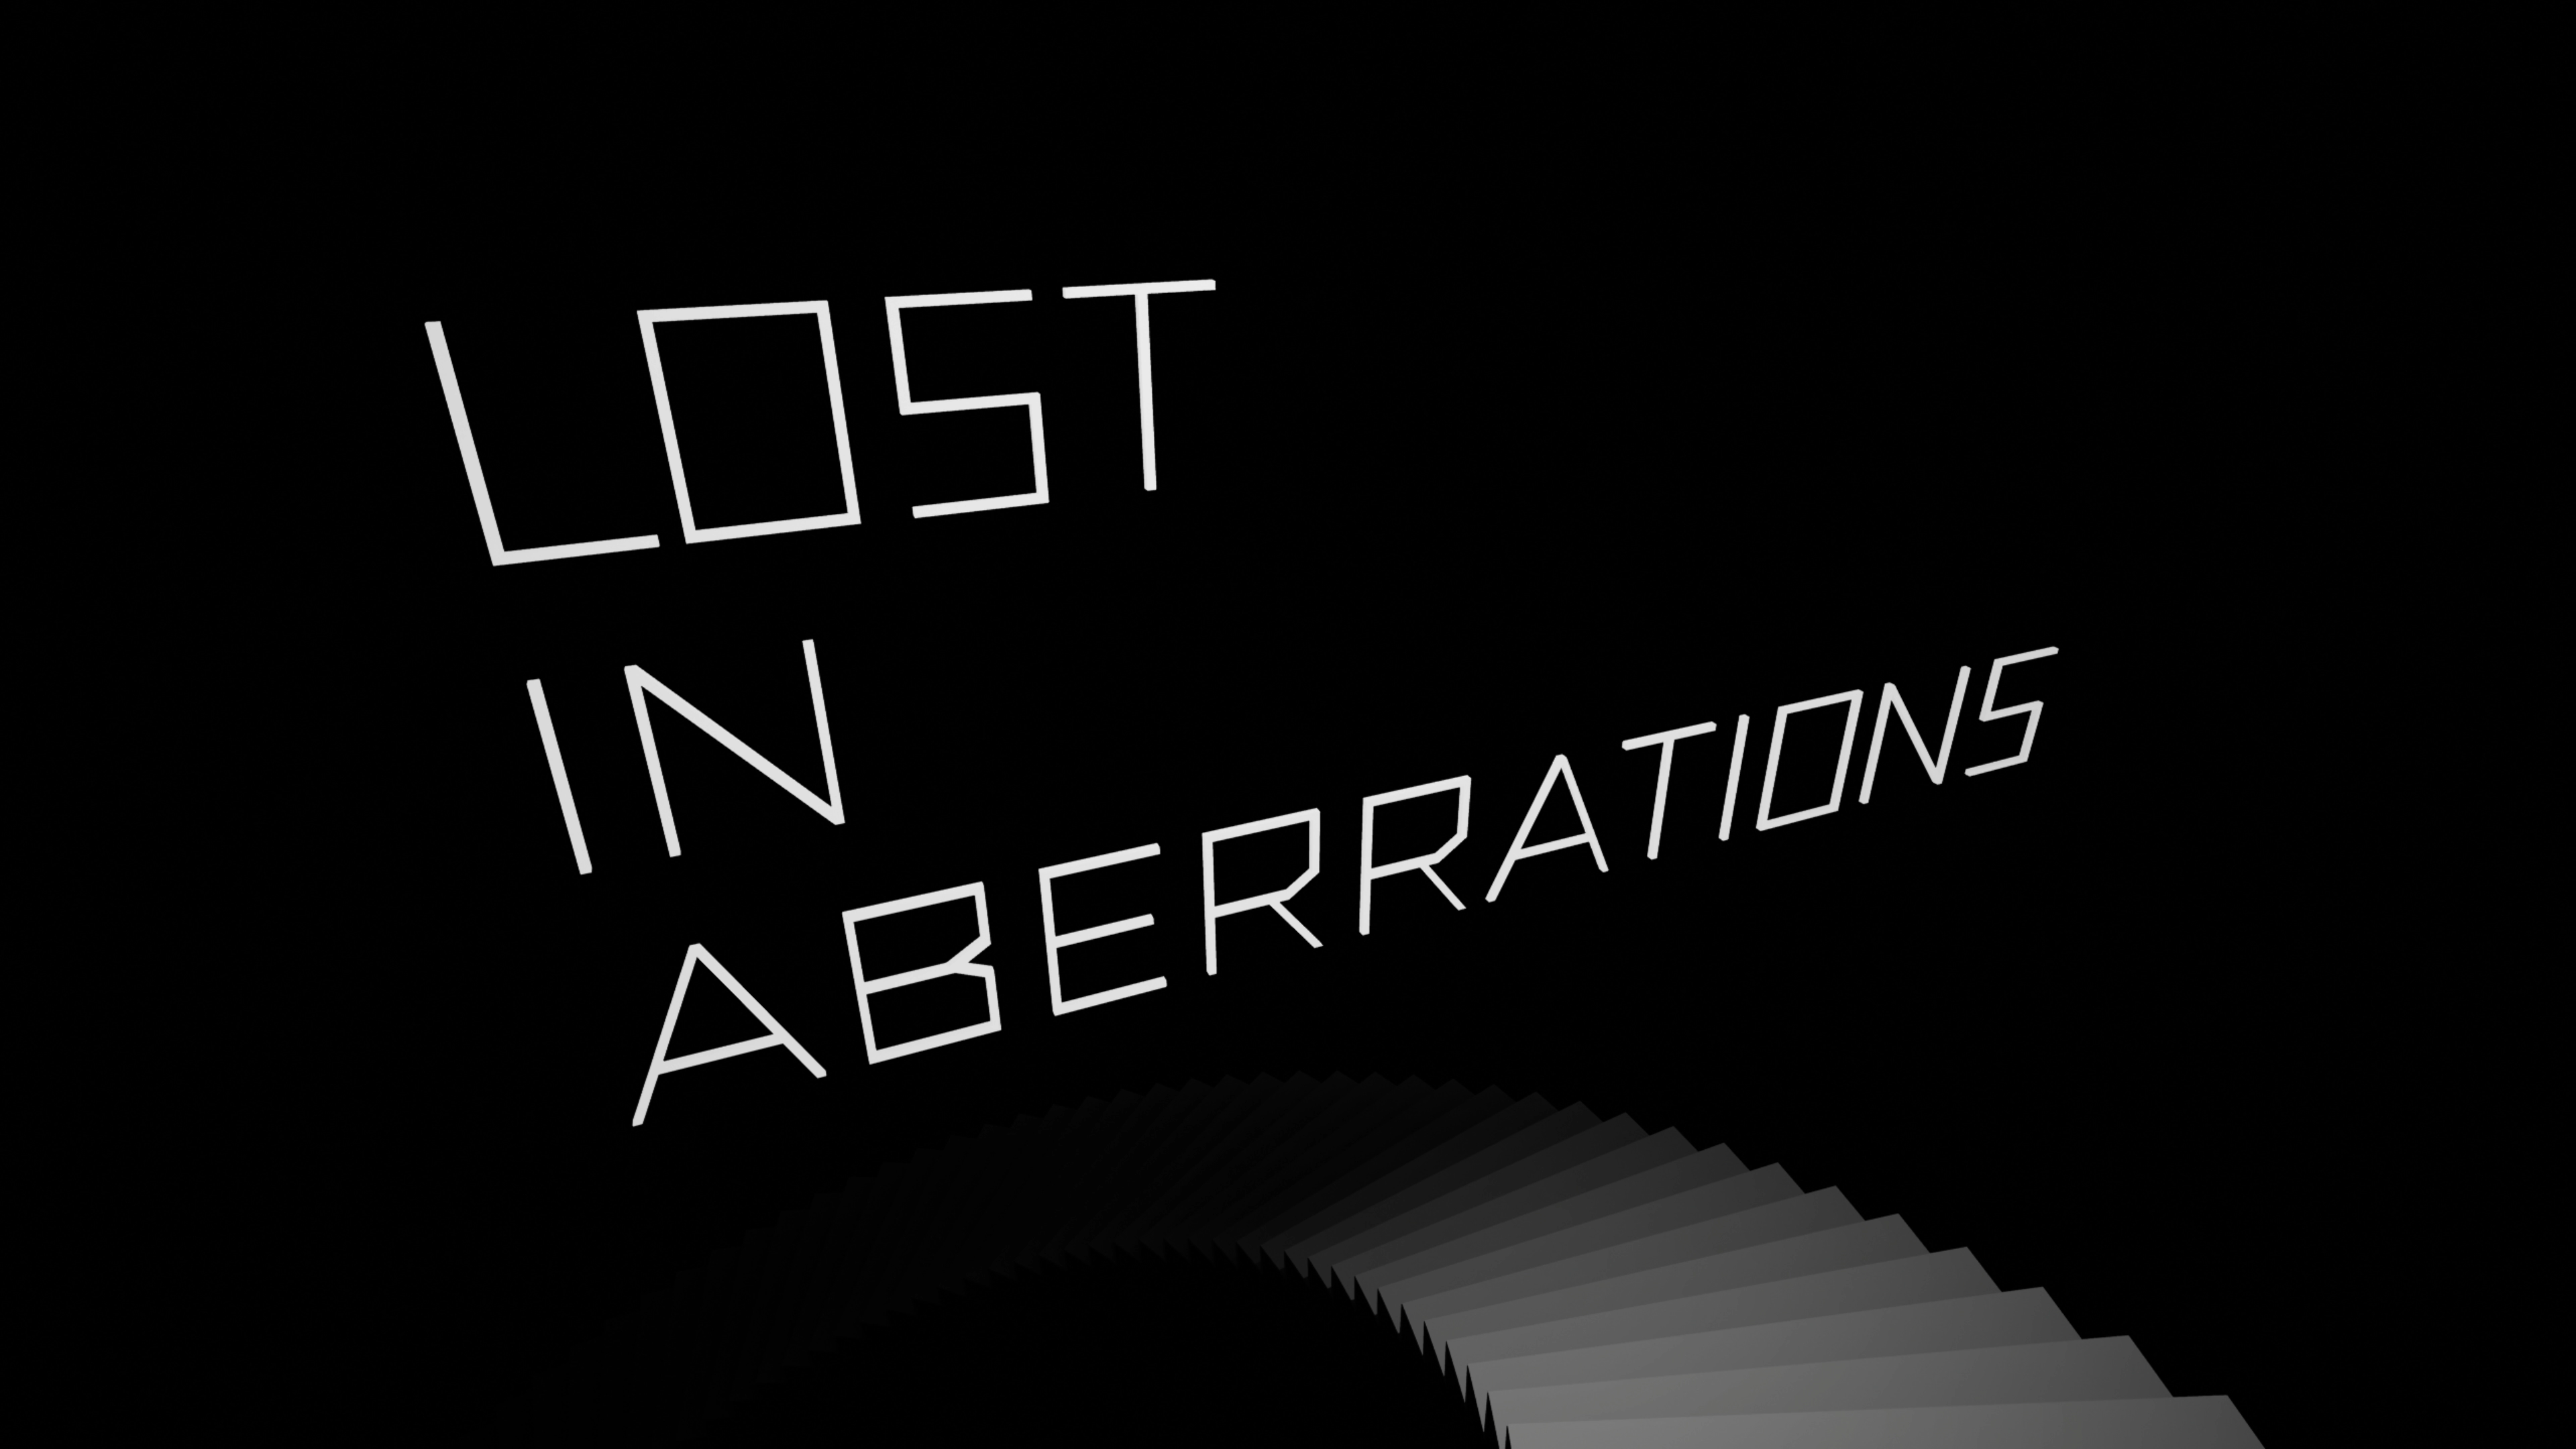 LOST IN ABERRATIONS